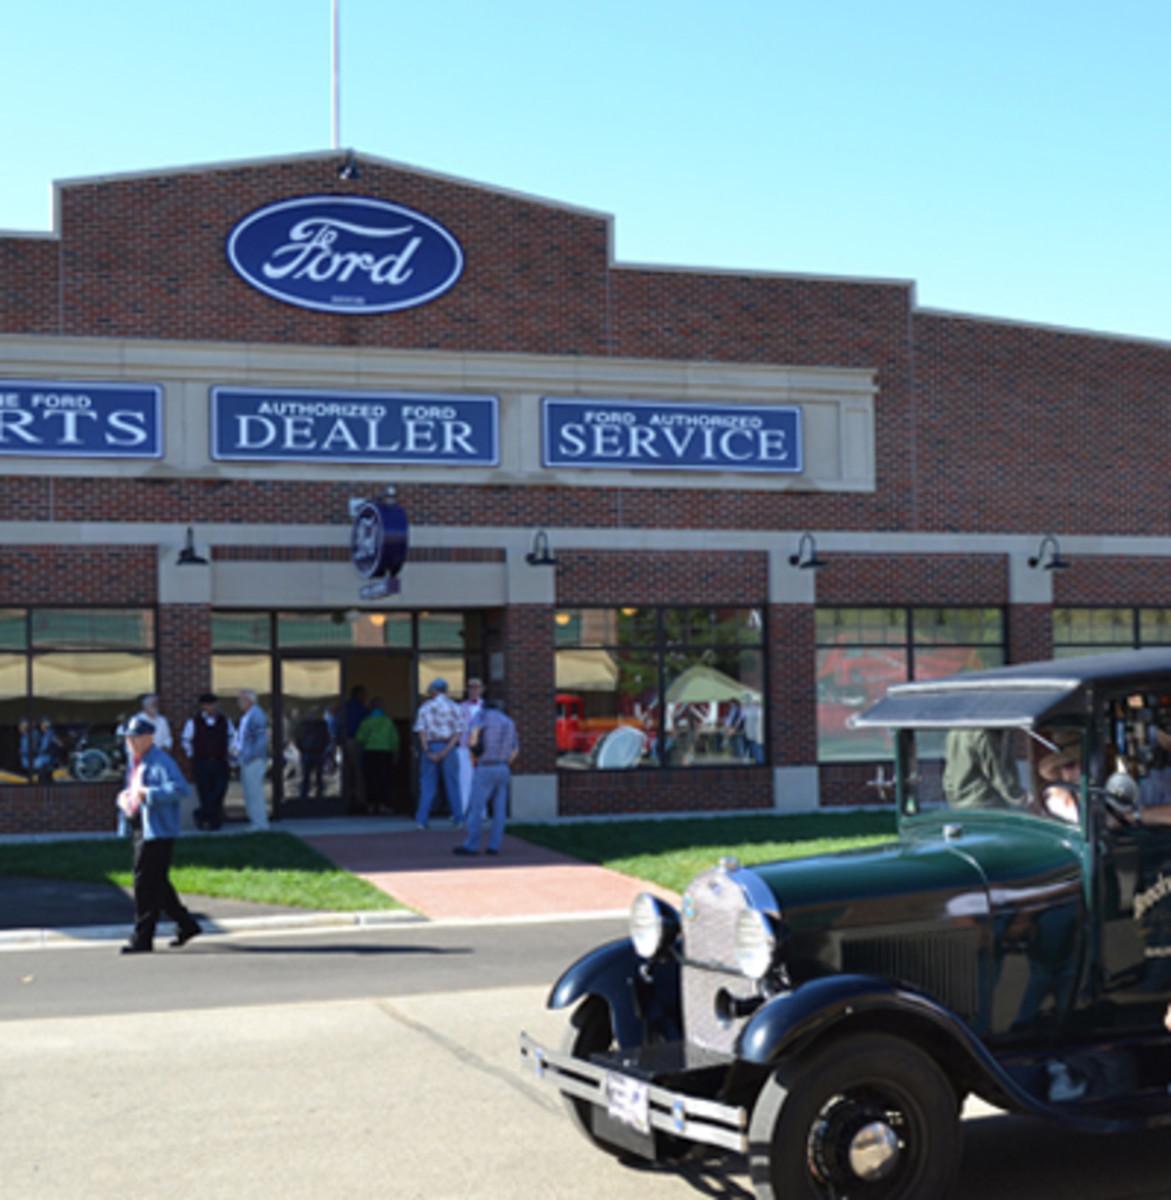 A Model A Ford pulls up in front of just one of the authentically re-created auto dealerships at the Gilmore Car Museum. Ford Motor Company introduced Model A in 1928 after producing more than 15 million Model Ts that were produced with little change between 1908 – 1927 - Photo Gilmore Car Museum